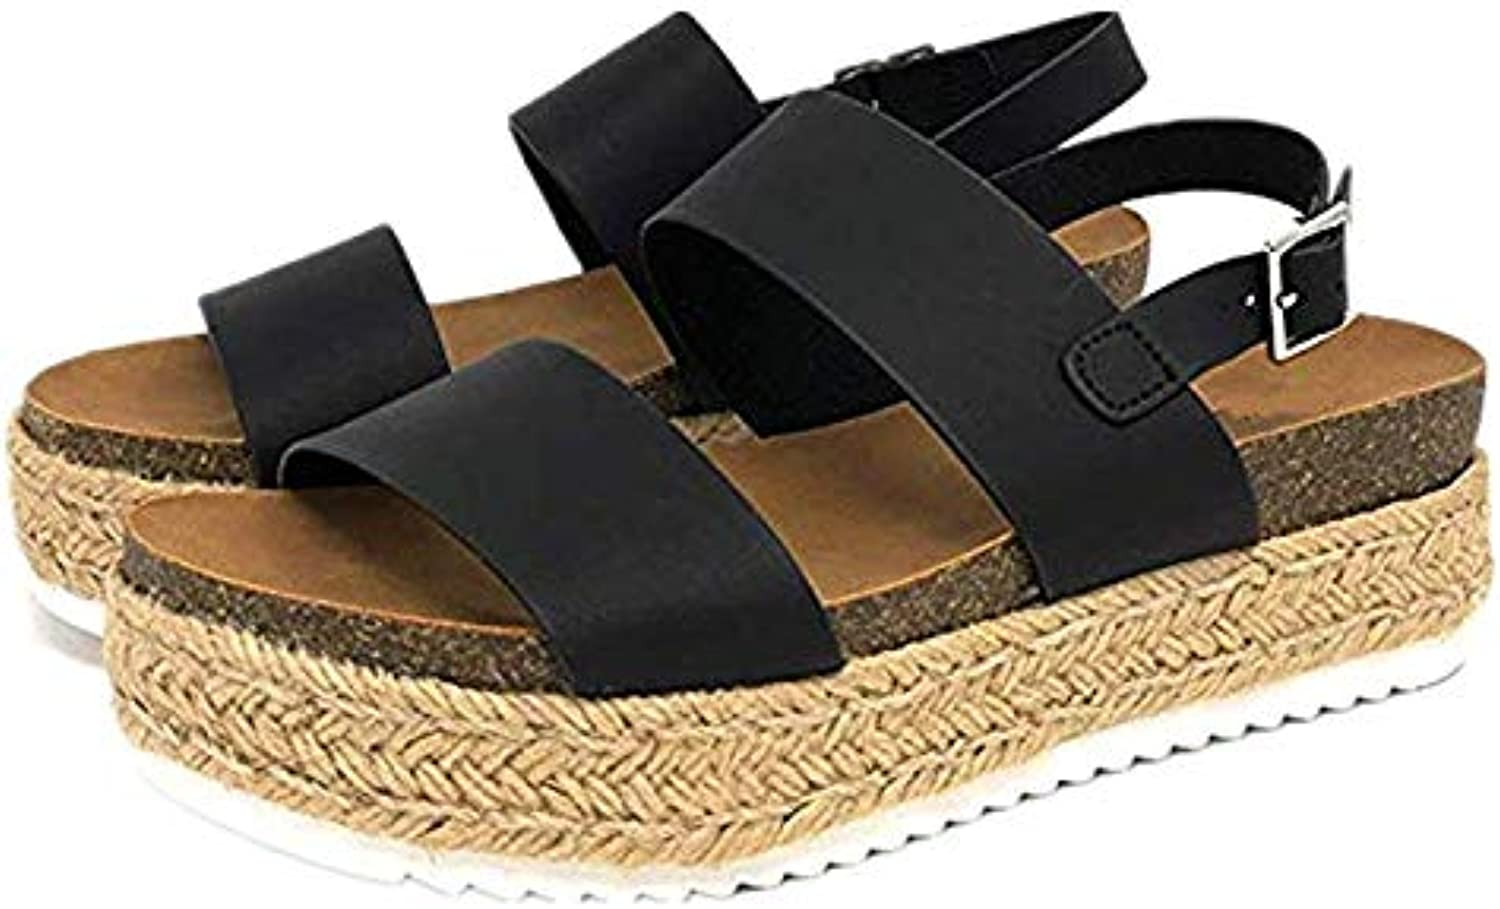 Sandals Ladies Platform Espadrille Summer Wedge Heel Leather 5 cm Heel Sandals Peep Toe Shallow Summer shoes Comfortable,Black,35